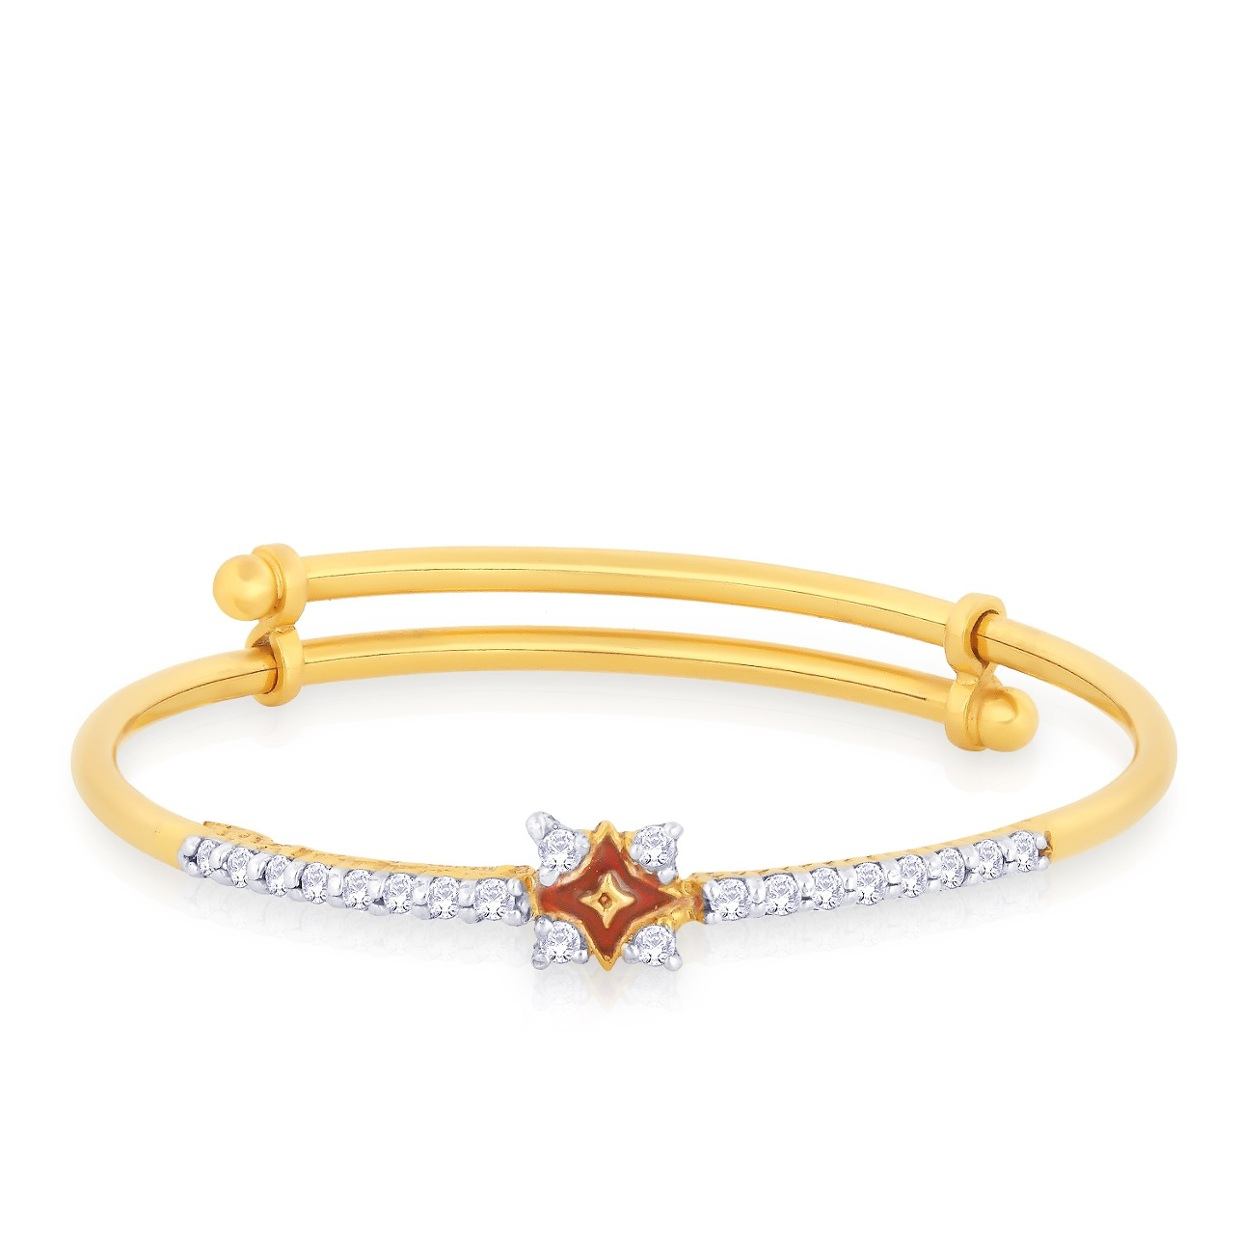 Gold Bracelet for Girl/ Woman at Antiquariat Jaipur - ThingLink